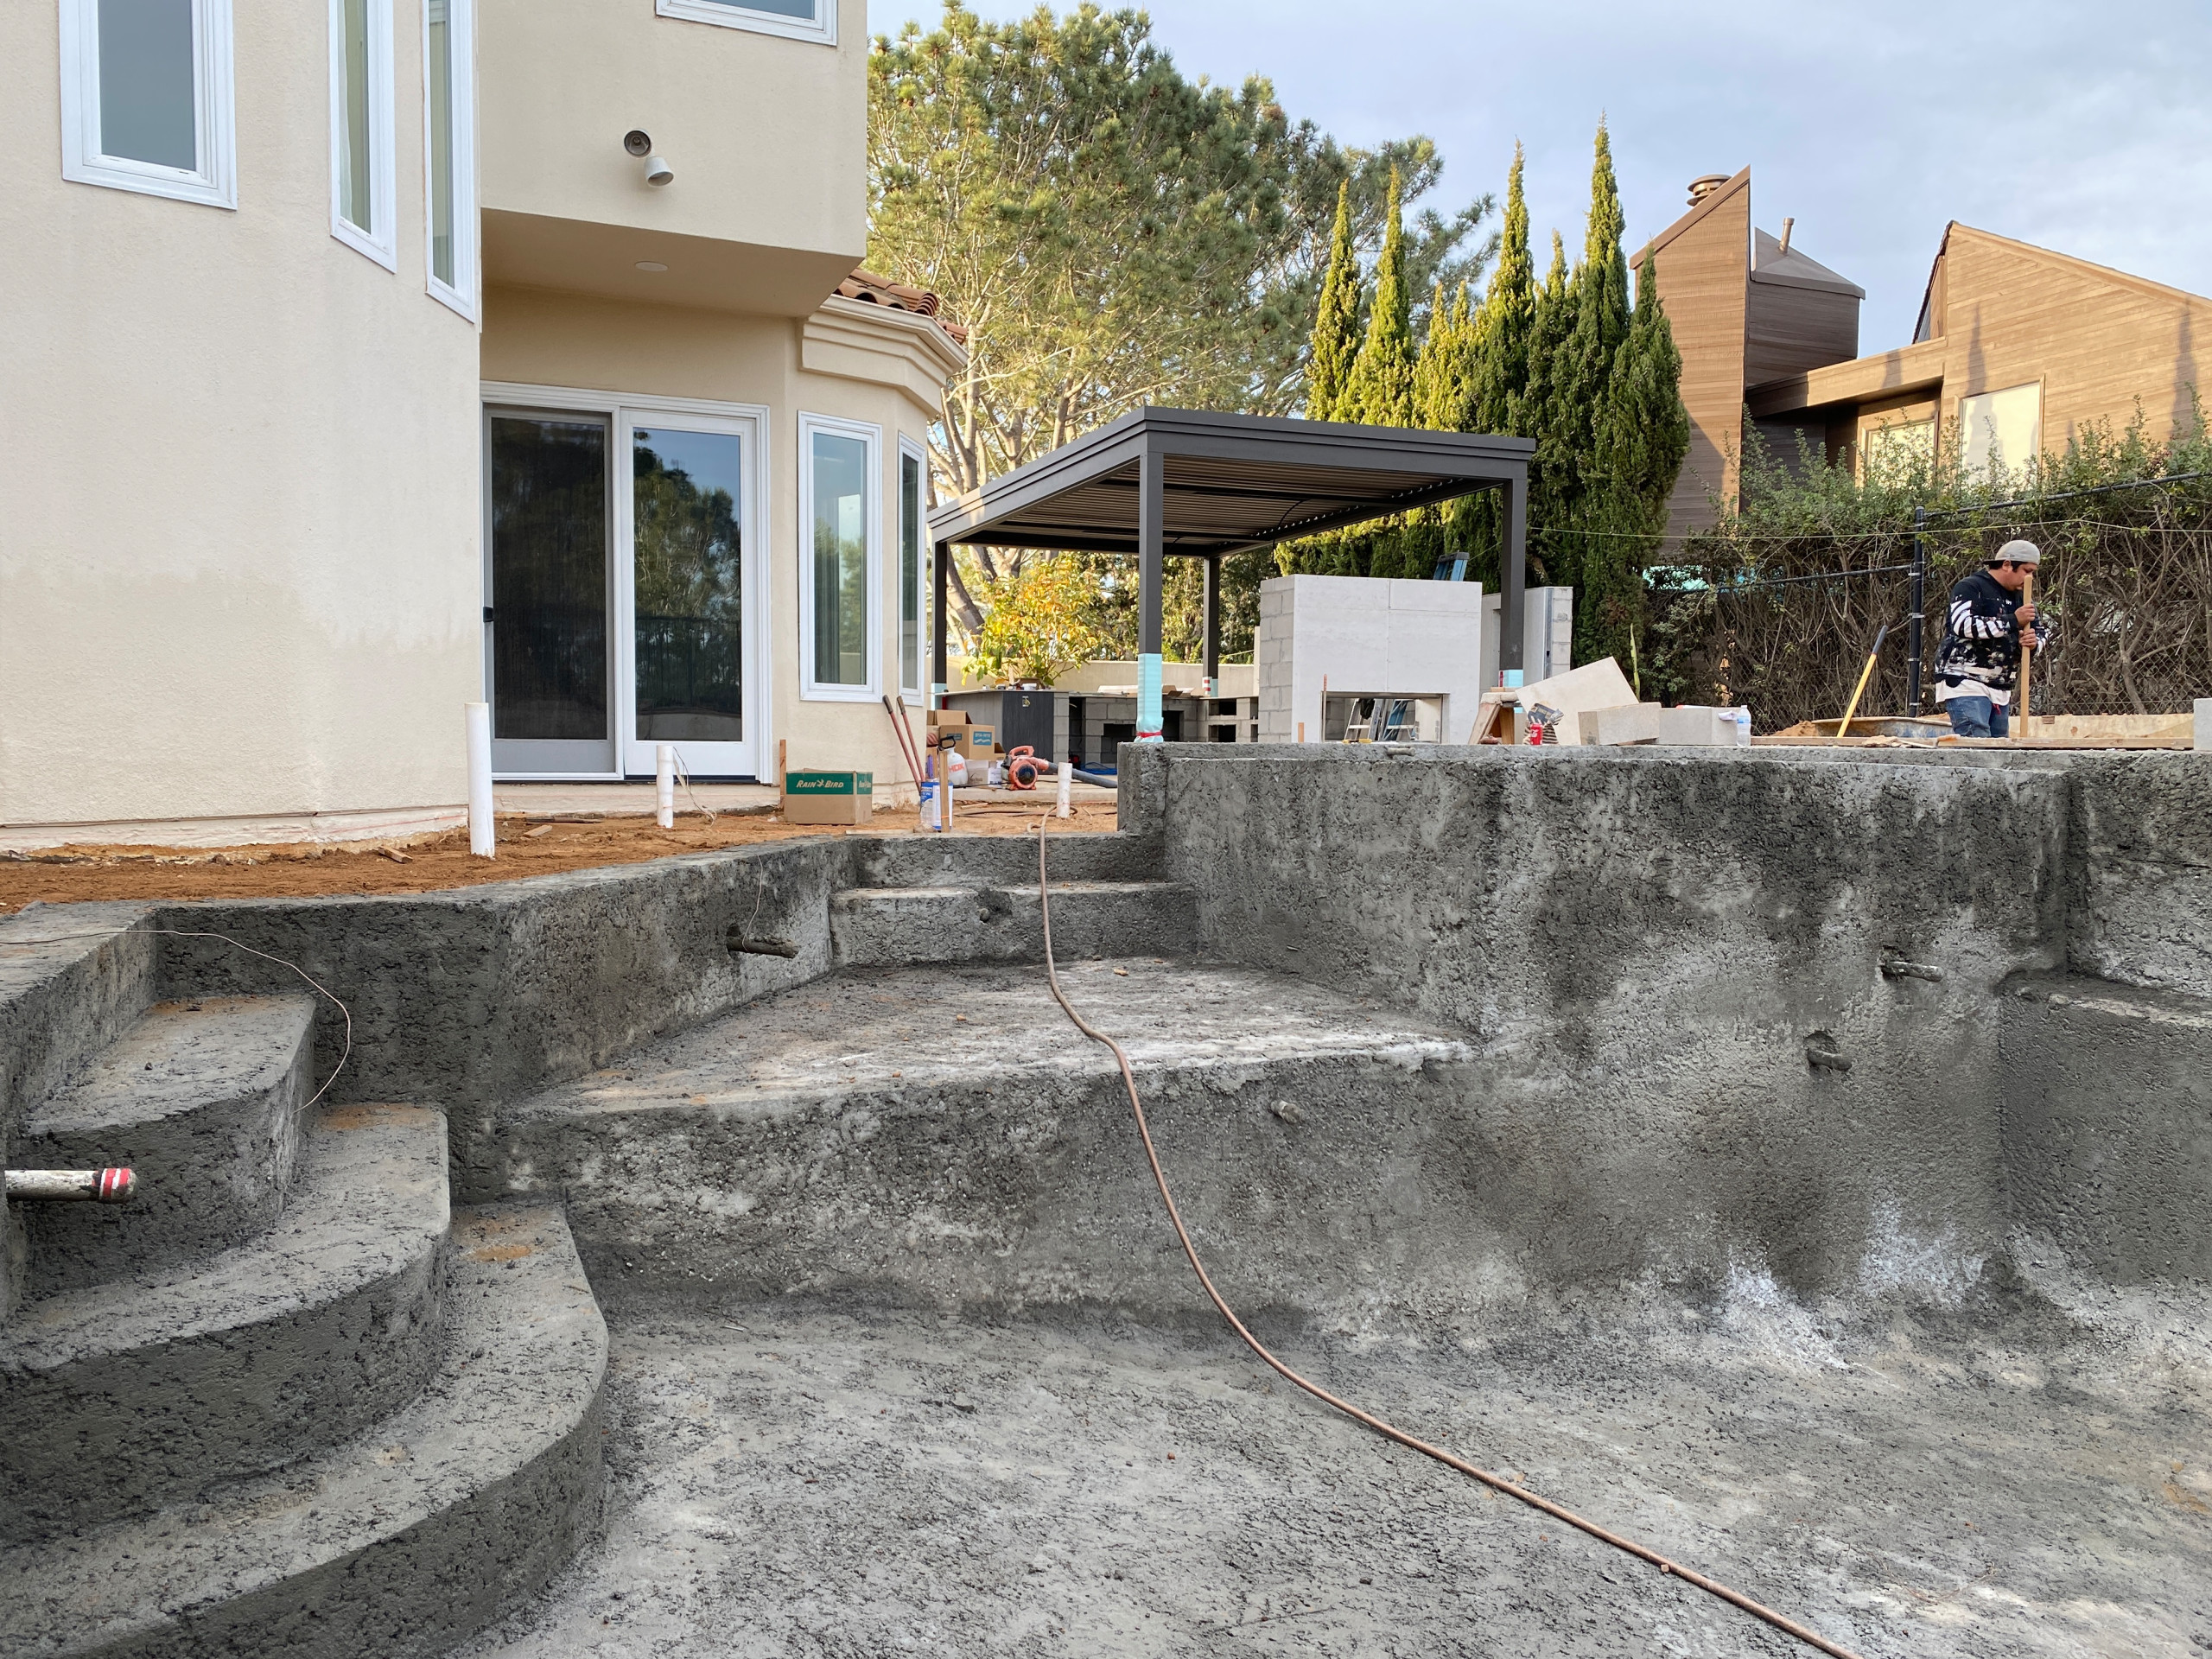 Pool Shotcrete Is In, Now Time For Coping!